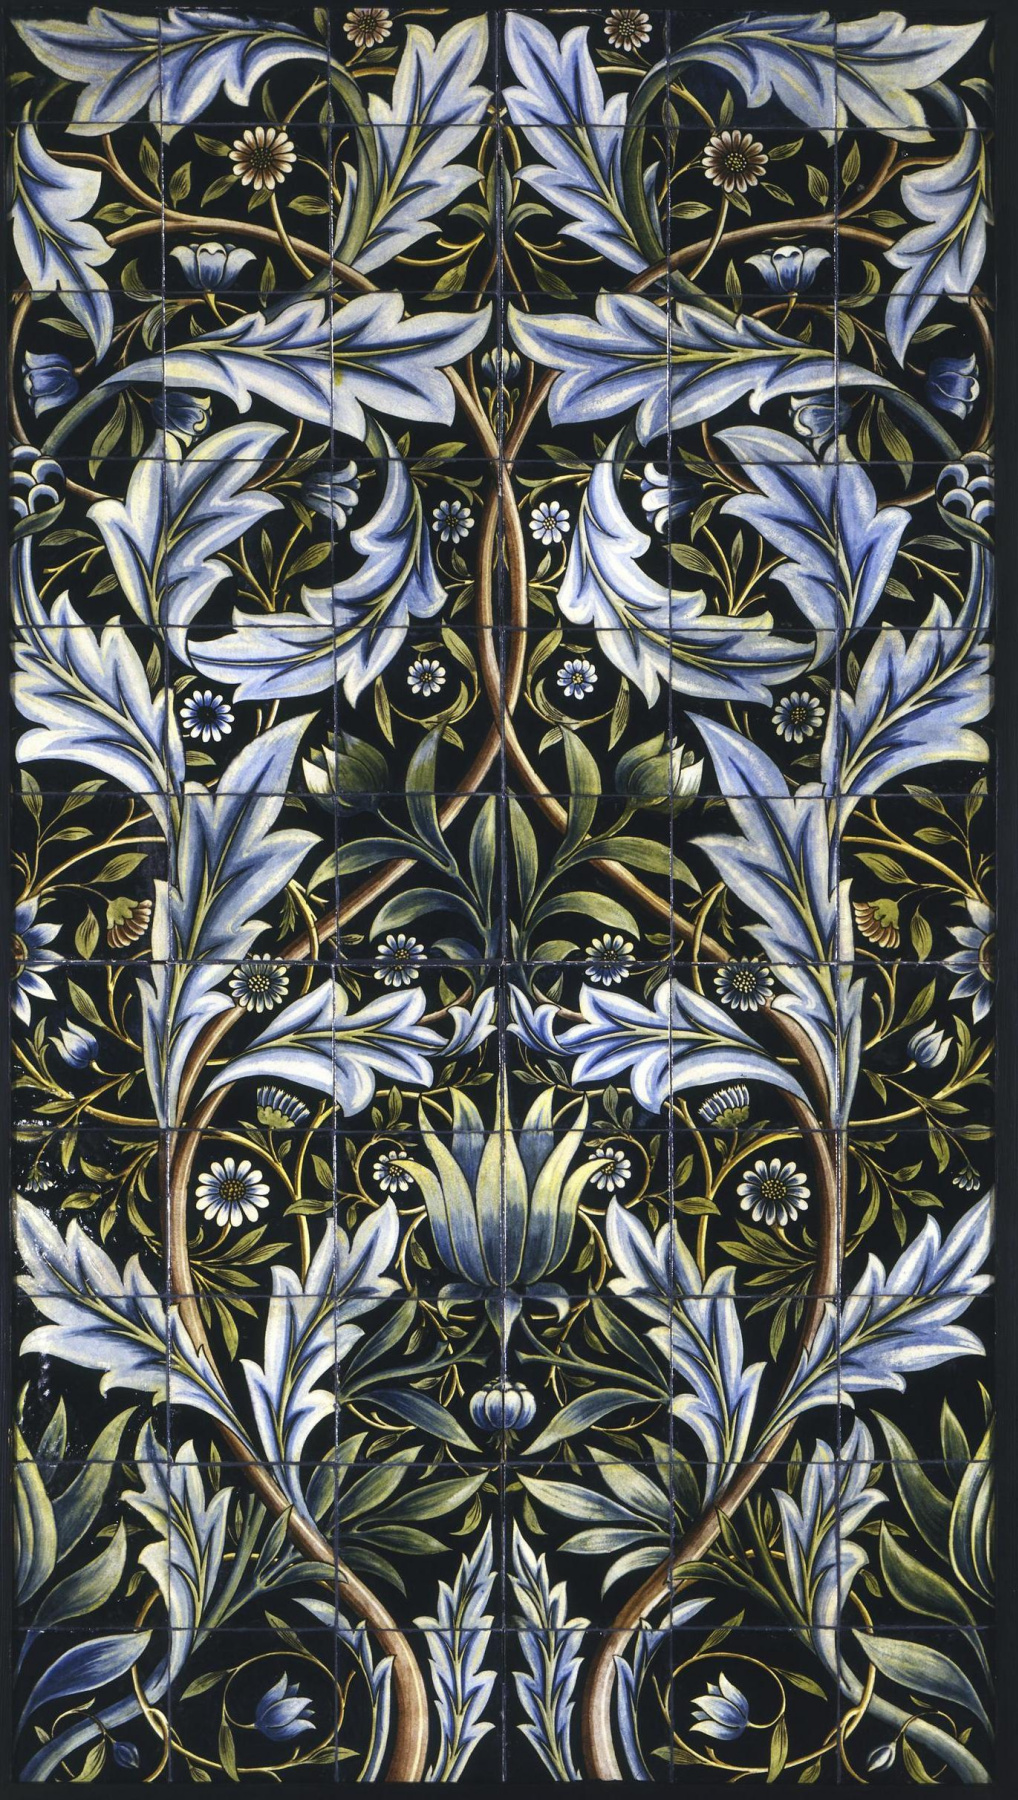 William Morris. Flowers on black